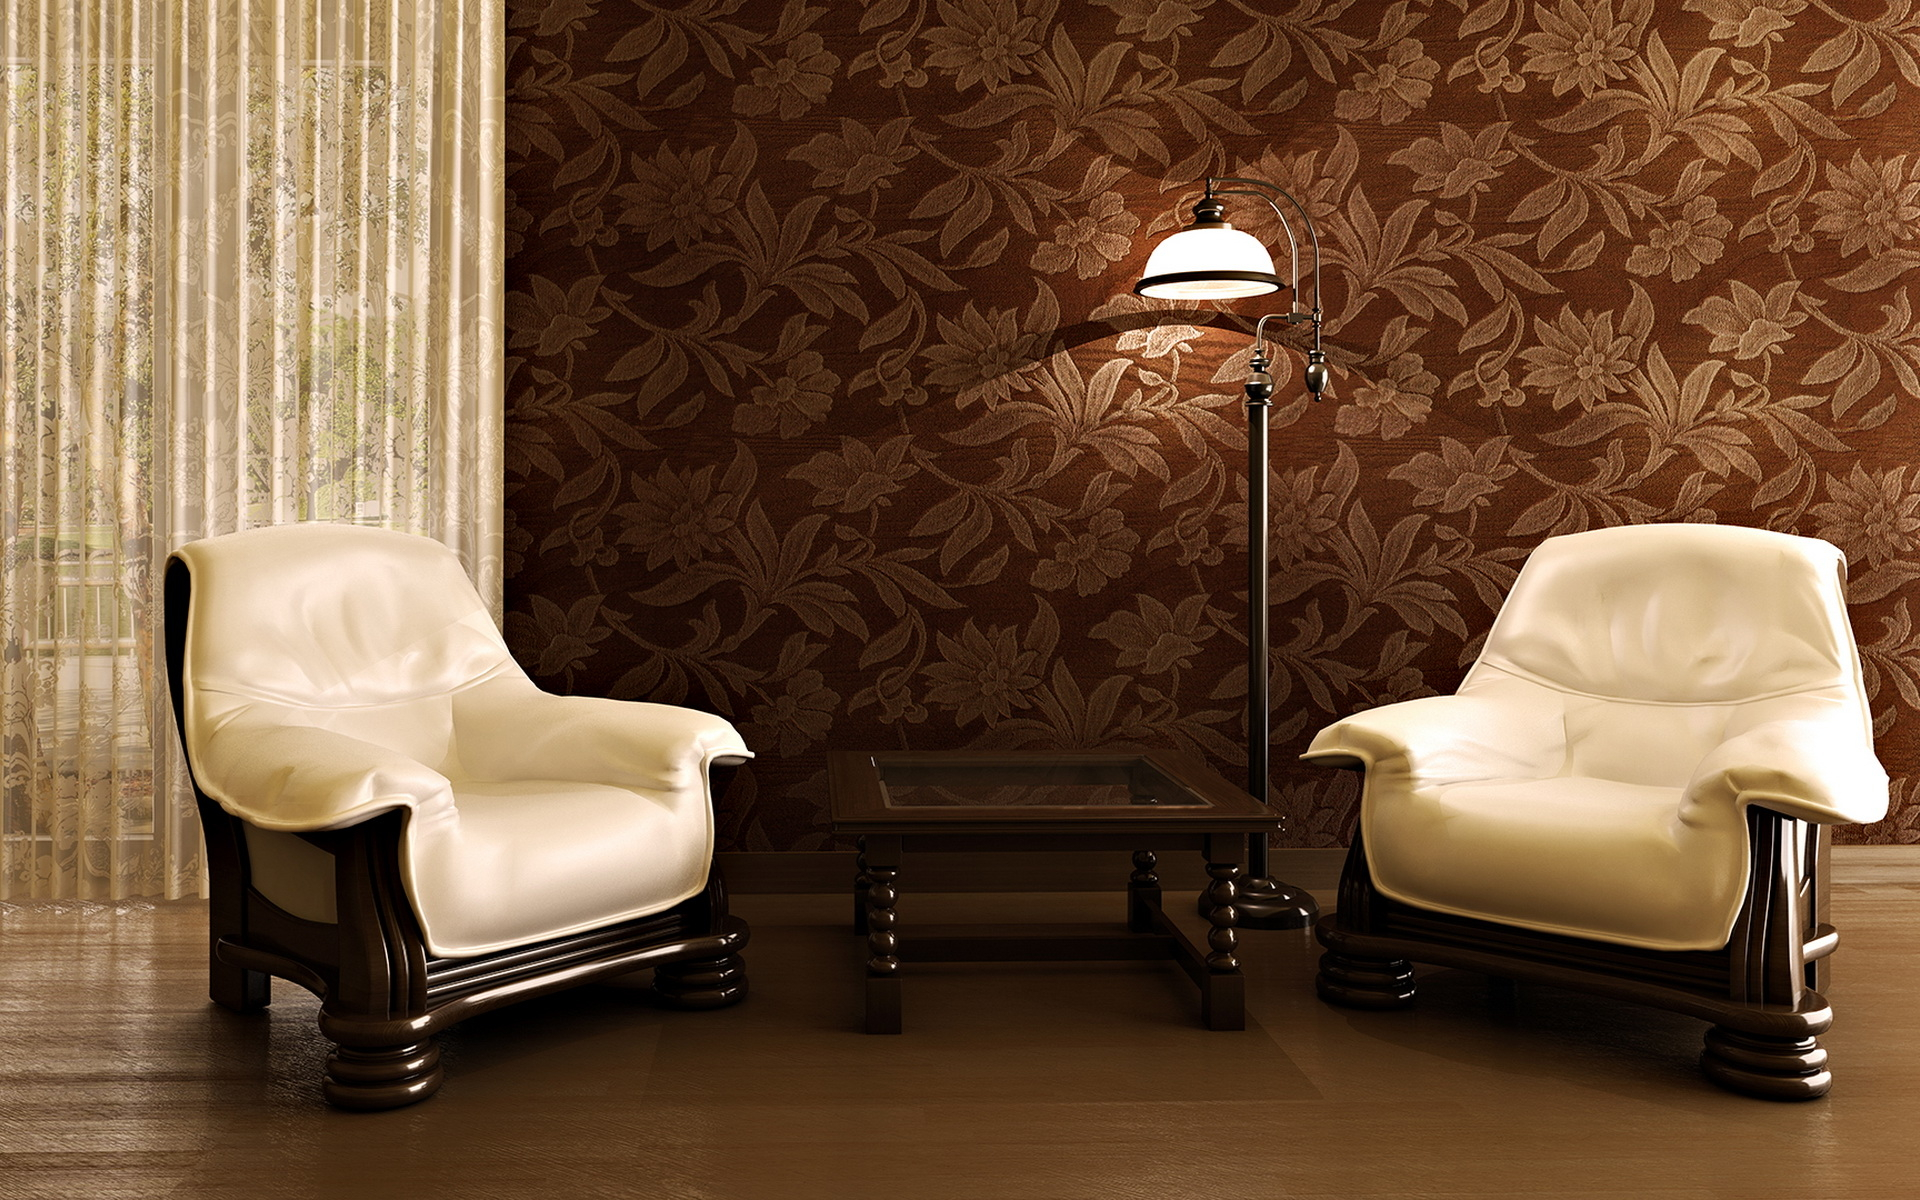 wallpapers for living room design ideas in uk. Black Bedroom Furniture Sets. Home Design Ideas